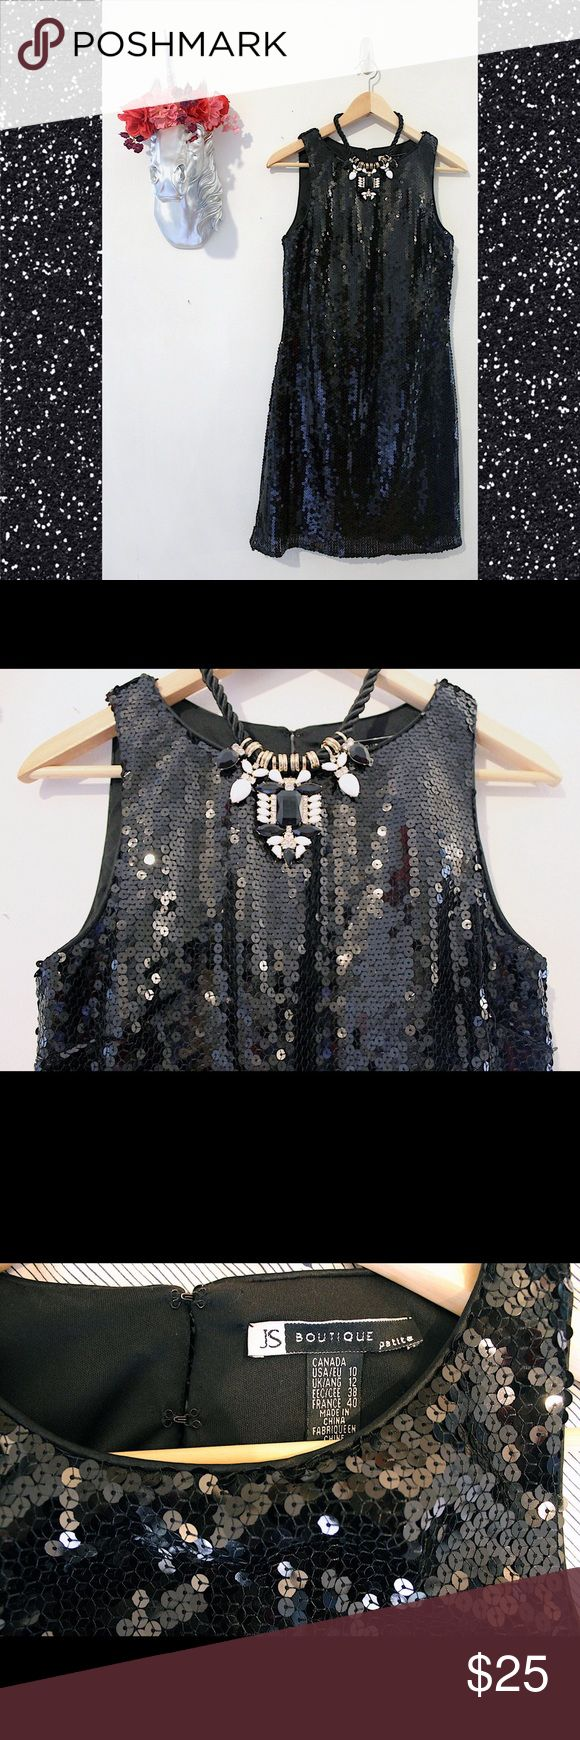 JS Boutique Petite Sequin Dress ✨👯✨ This black sleeveless sequin dress is perfect for any formal occasion! Covered in sequins with a black lining underneath and four small hook fasteners, starting at the top of the neckline, for a secure closure. This has been sitting in storage so there are a few loose strings but never worn and in like new condition. Please note this is petite sizing. 100% polyester. JS Boutique Dresses Midi